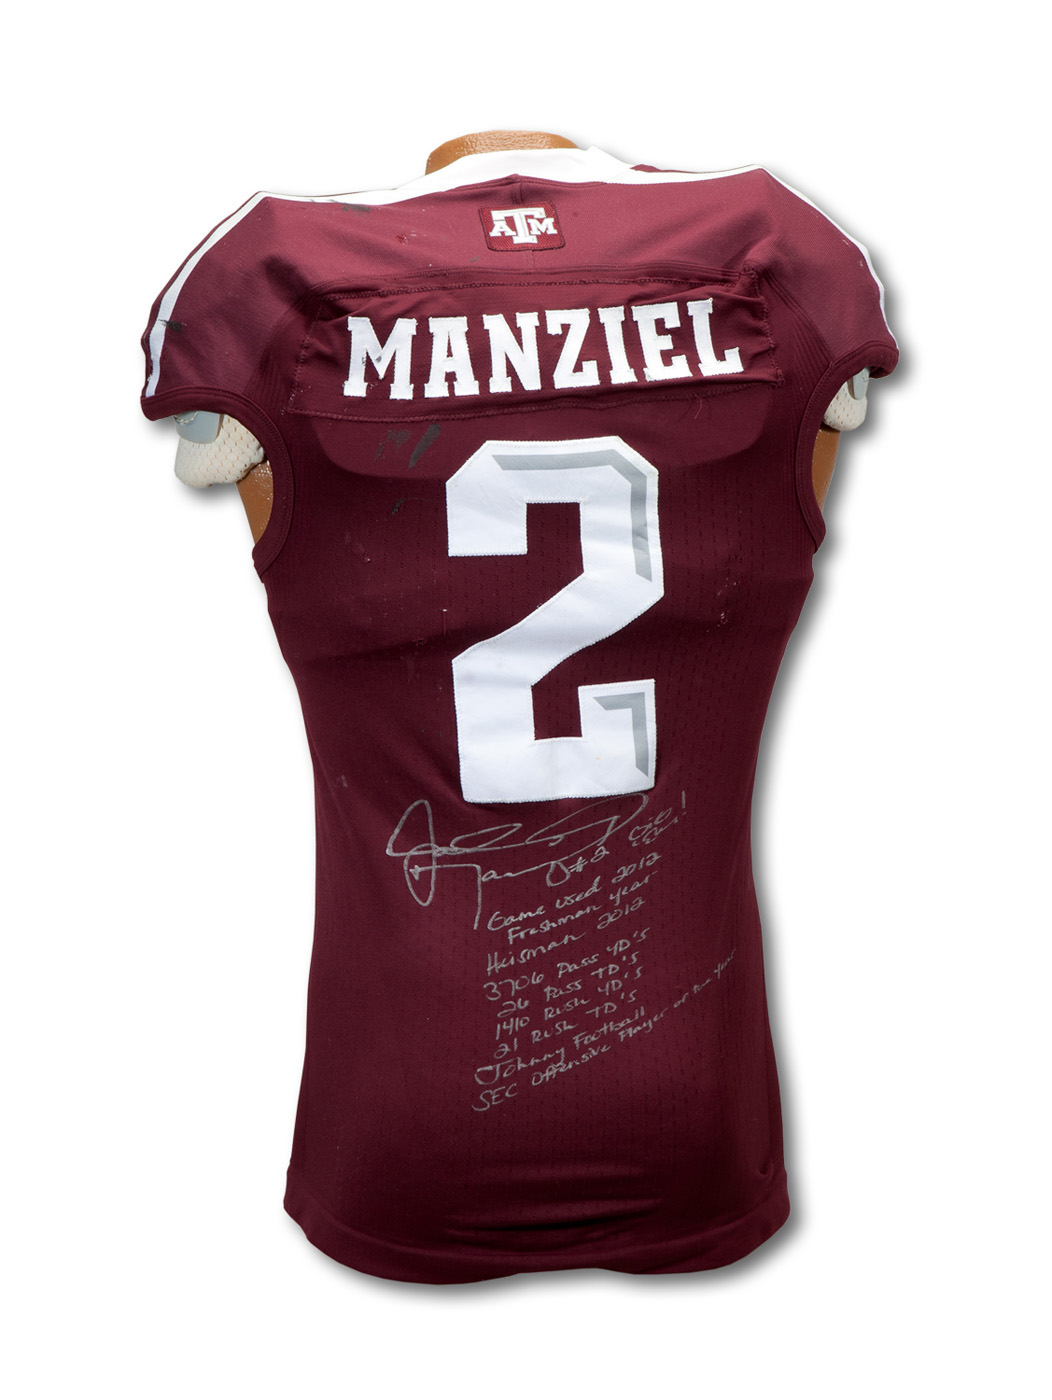 Johnny Manziel football jersey expected to crush record in auction ...